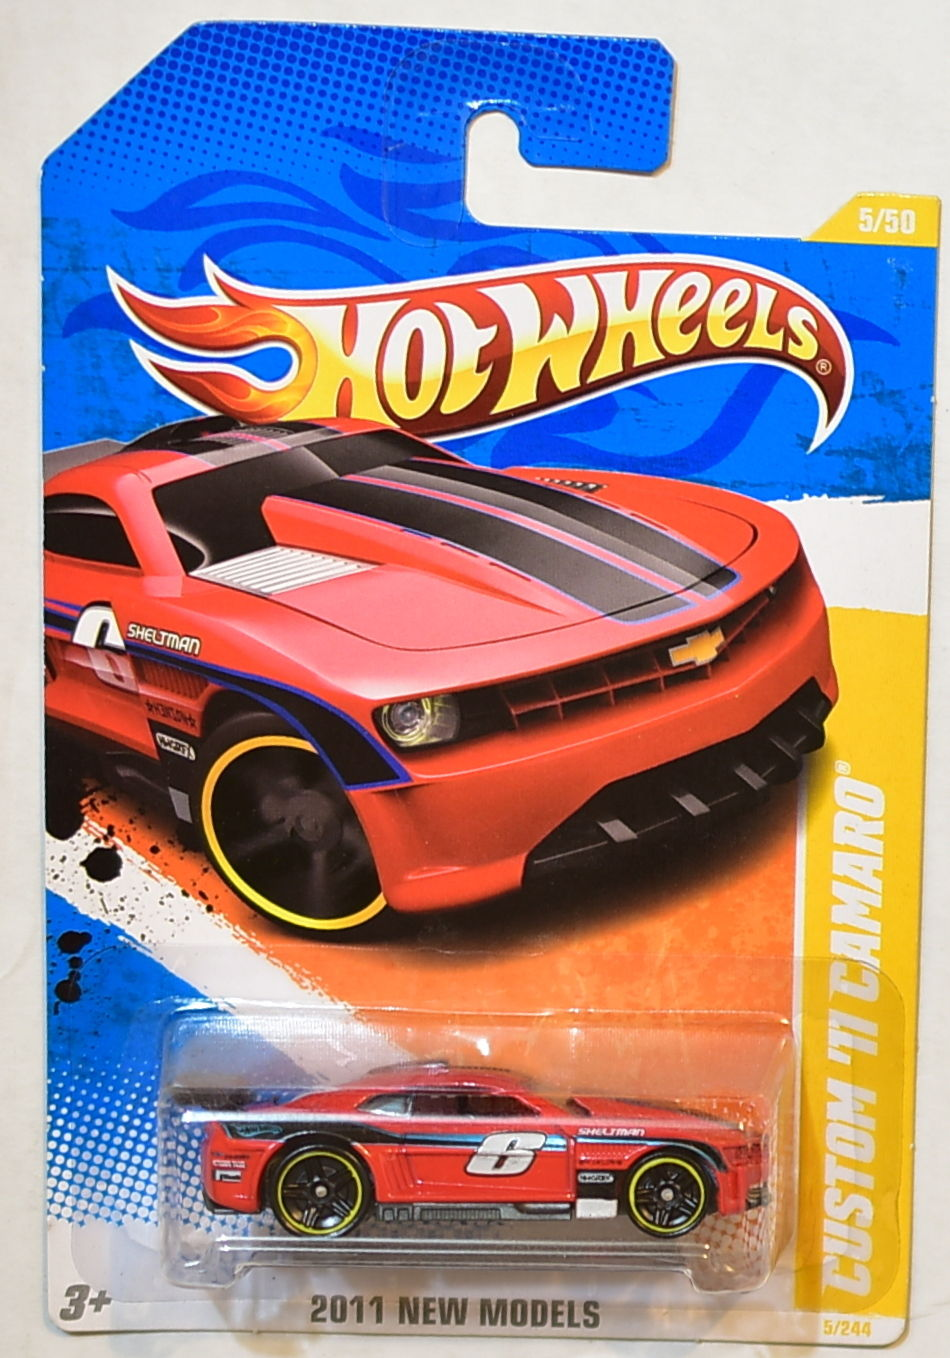 HOT WHEELS 2011 NEW MODELS CUSTOM '11 CUSTOM CAMARO